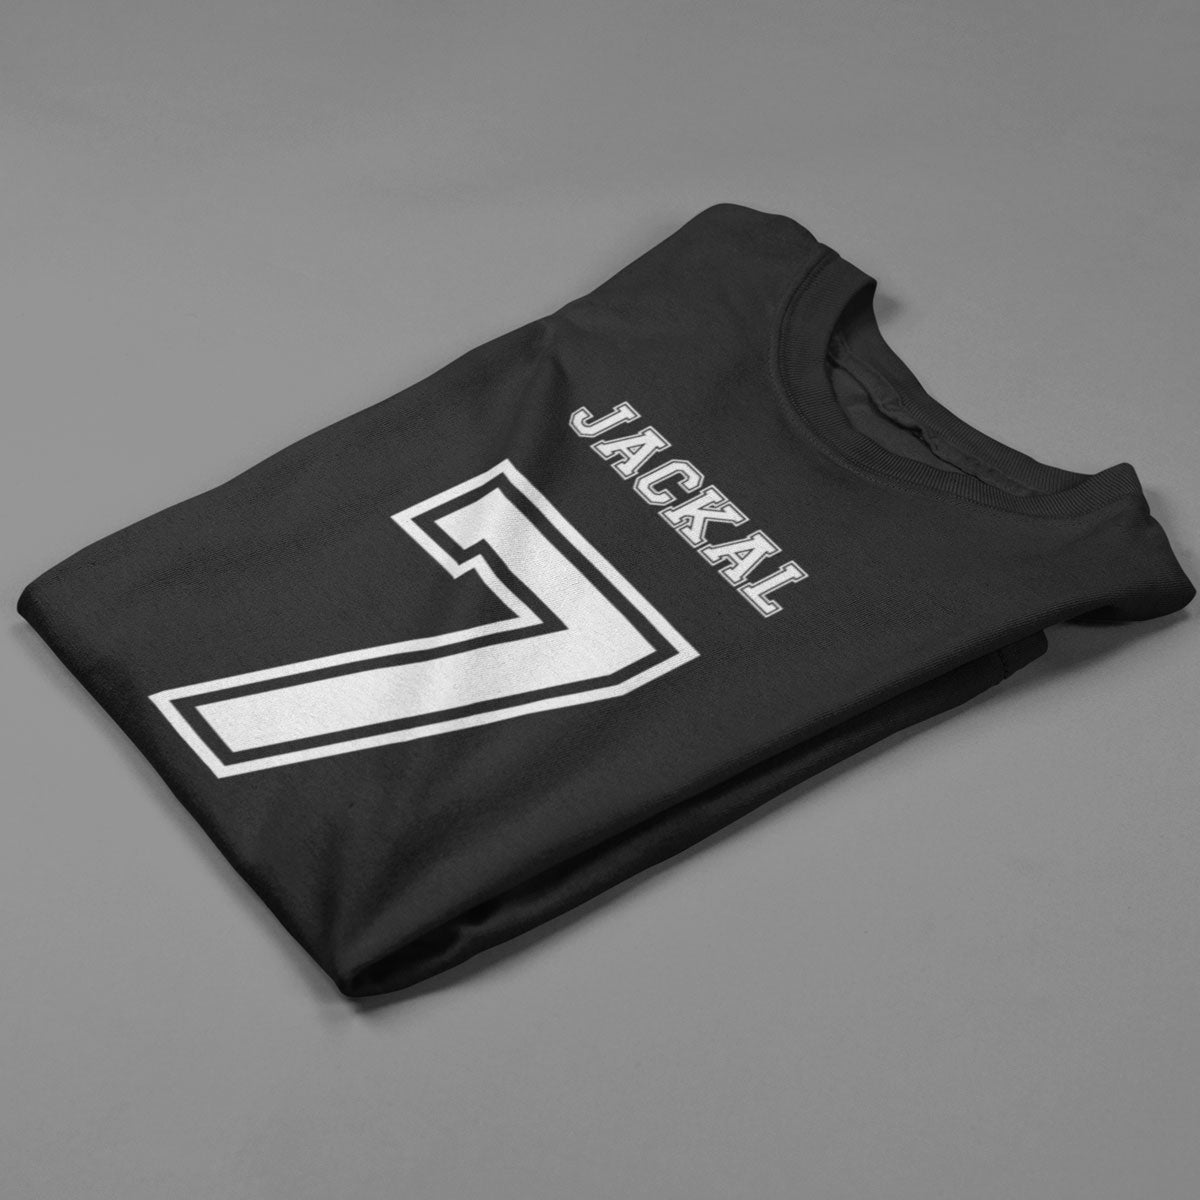 Jackal Number 7 Rugby Tee - First XV rugbystuff.com